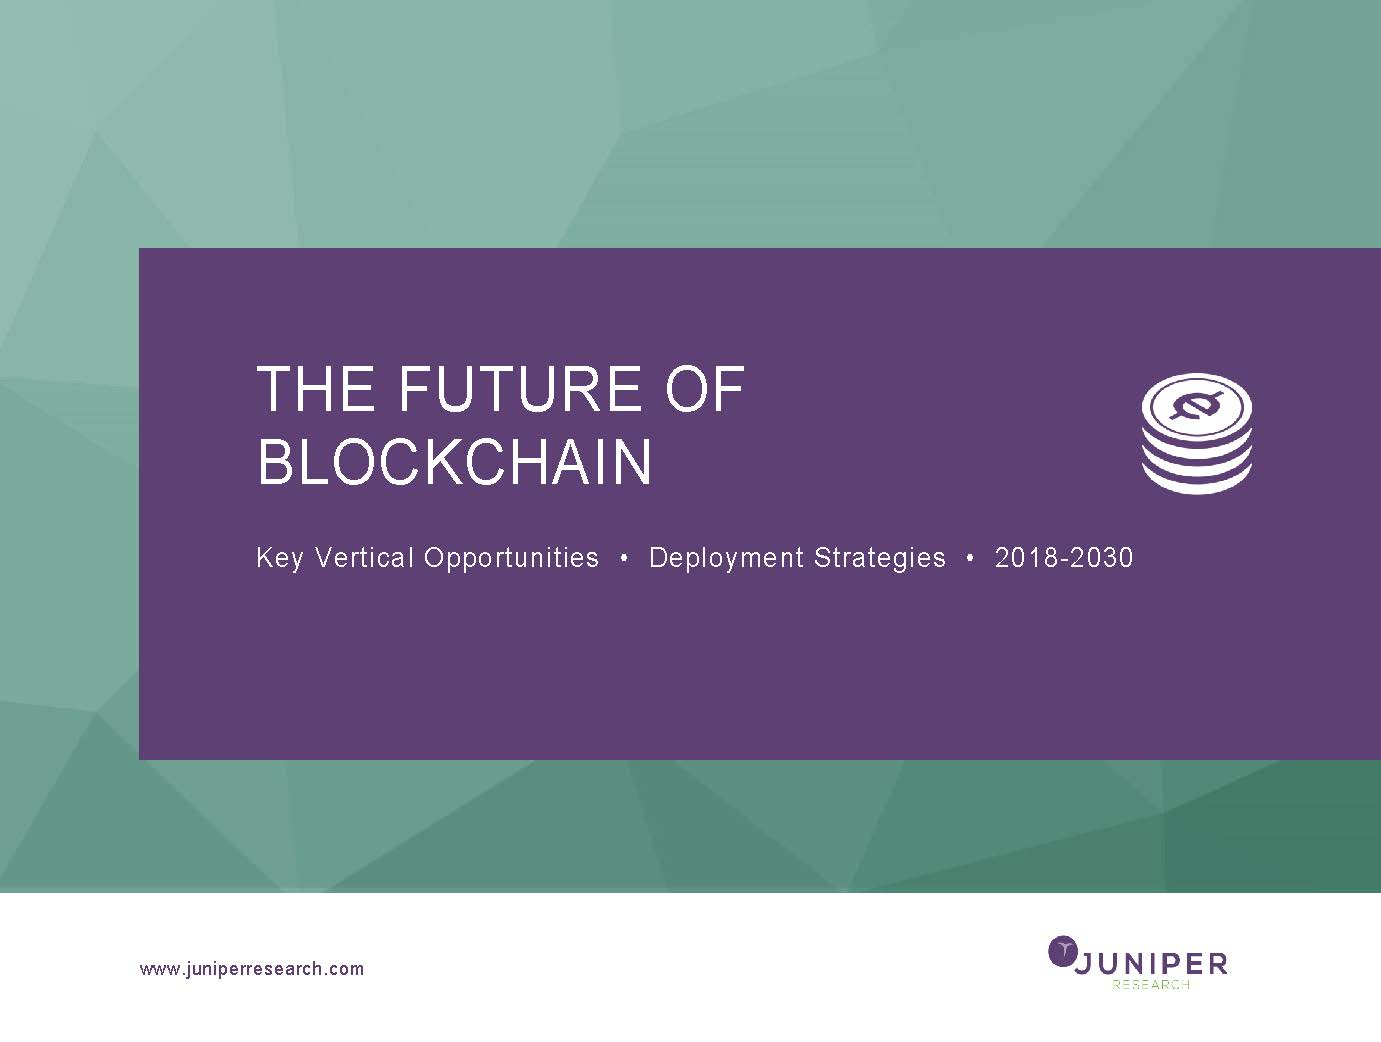 The Future of Blockchain: Executive Summary & Core Findings 2018-2030